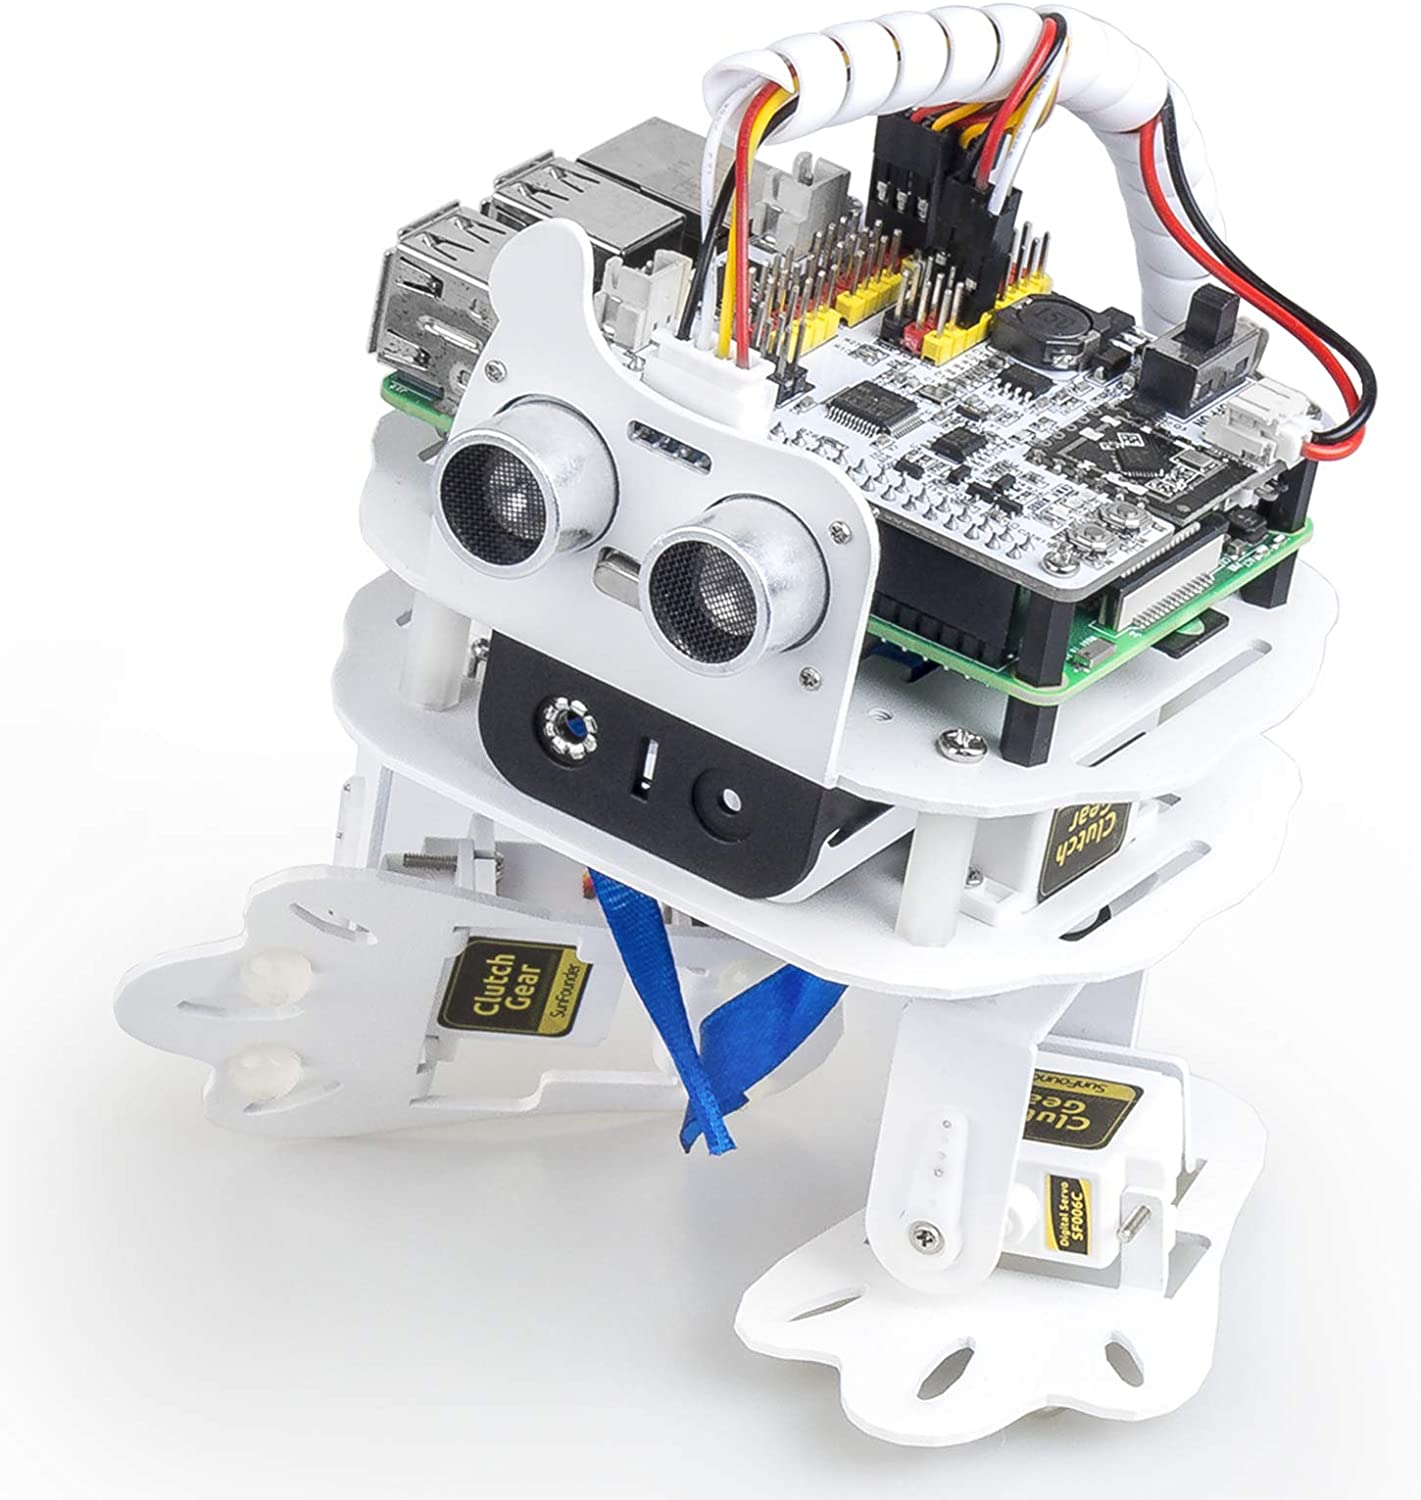 PiSloth AI Programmable Robot Kit for Raspberry Pi, Dancing, Obstacle Avoidance,Object Following, Sound Effect DIY Bionic Robot